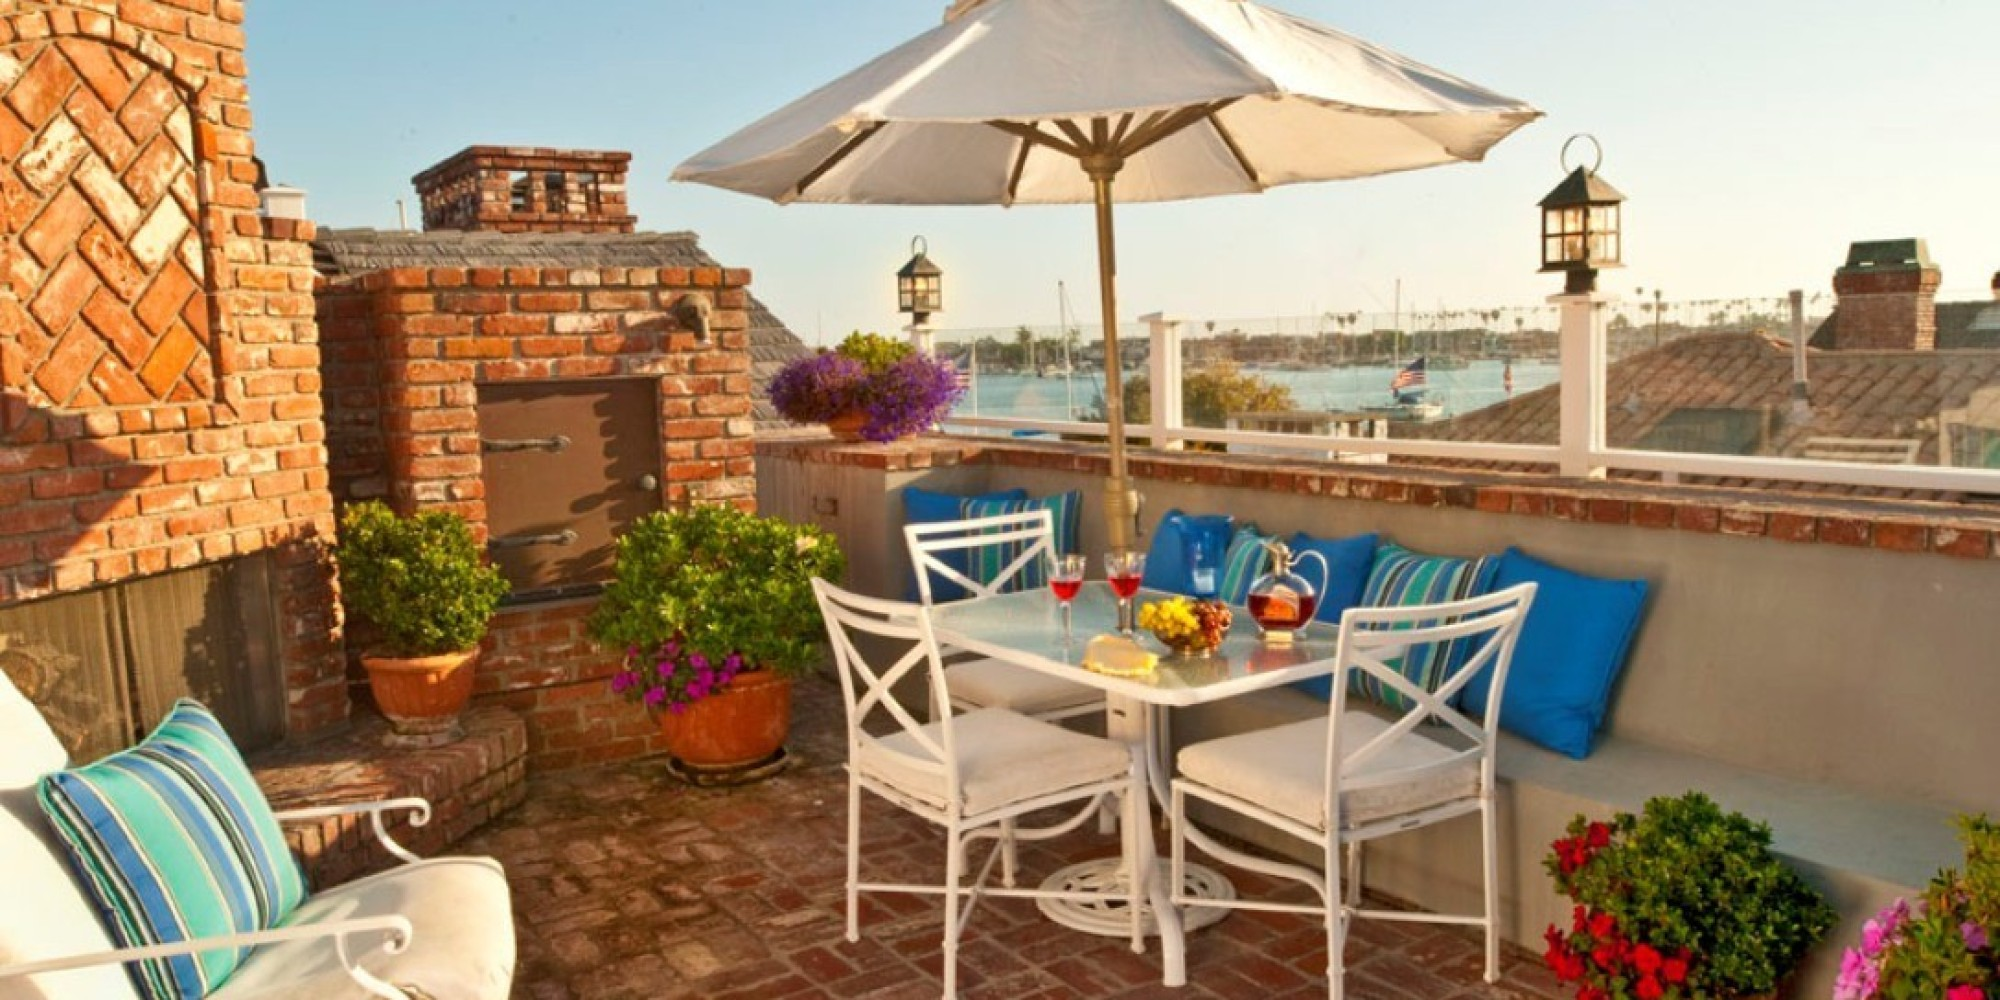 11 Gorgeous Porches And Patios We Need To Relax This Spring